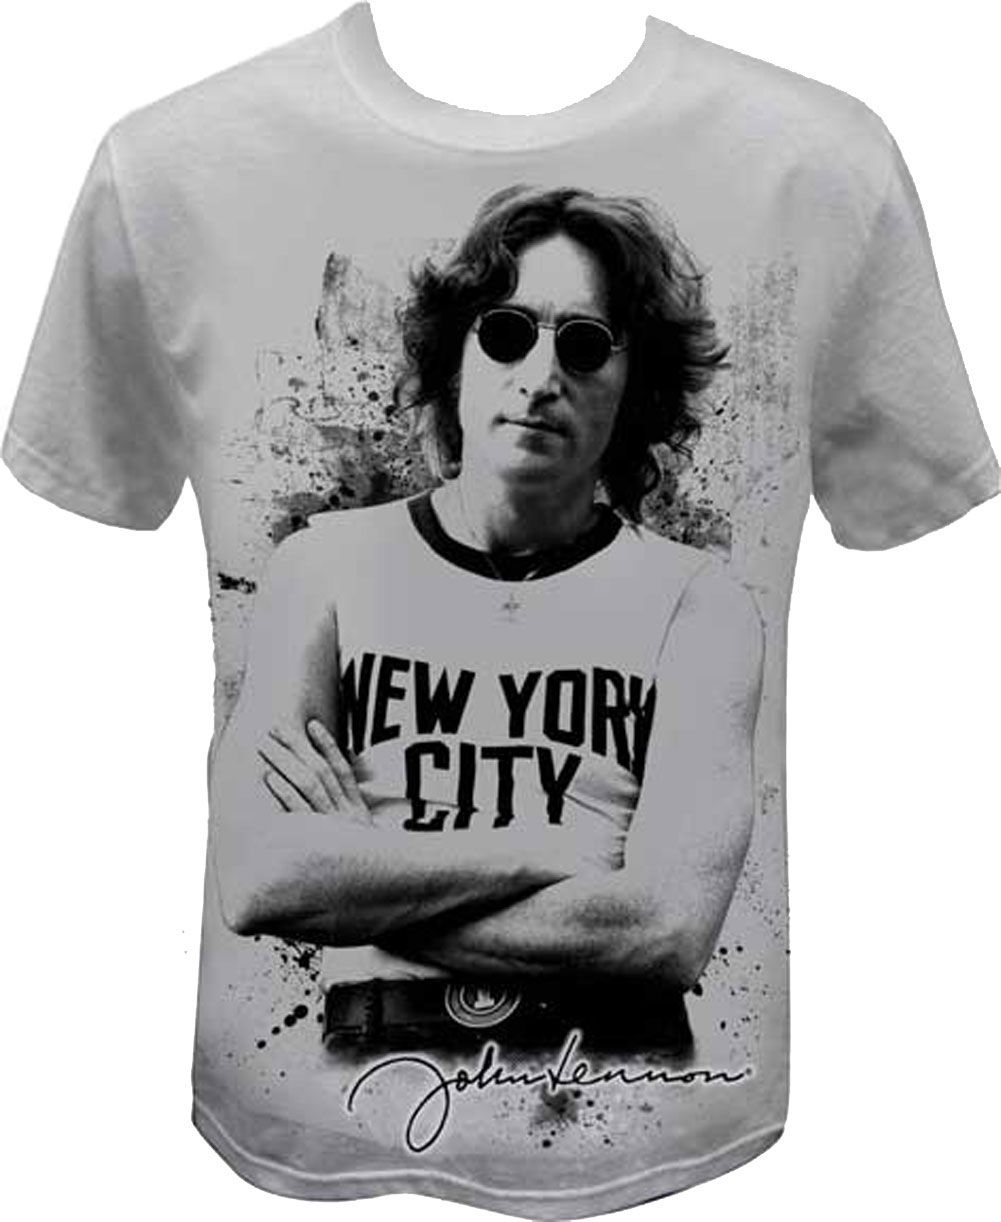 Official John Lennon Famous New York City Image T Shirt Rock Band The Beatles T Ebay